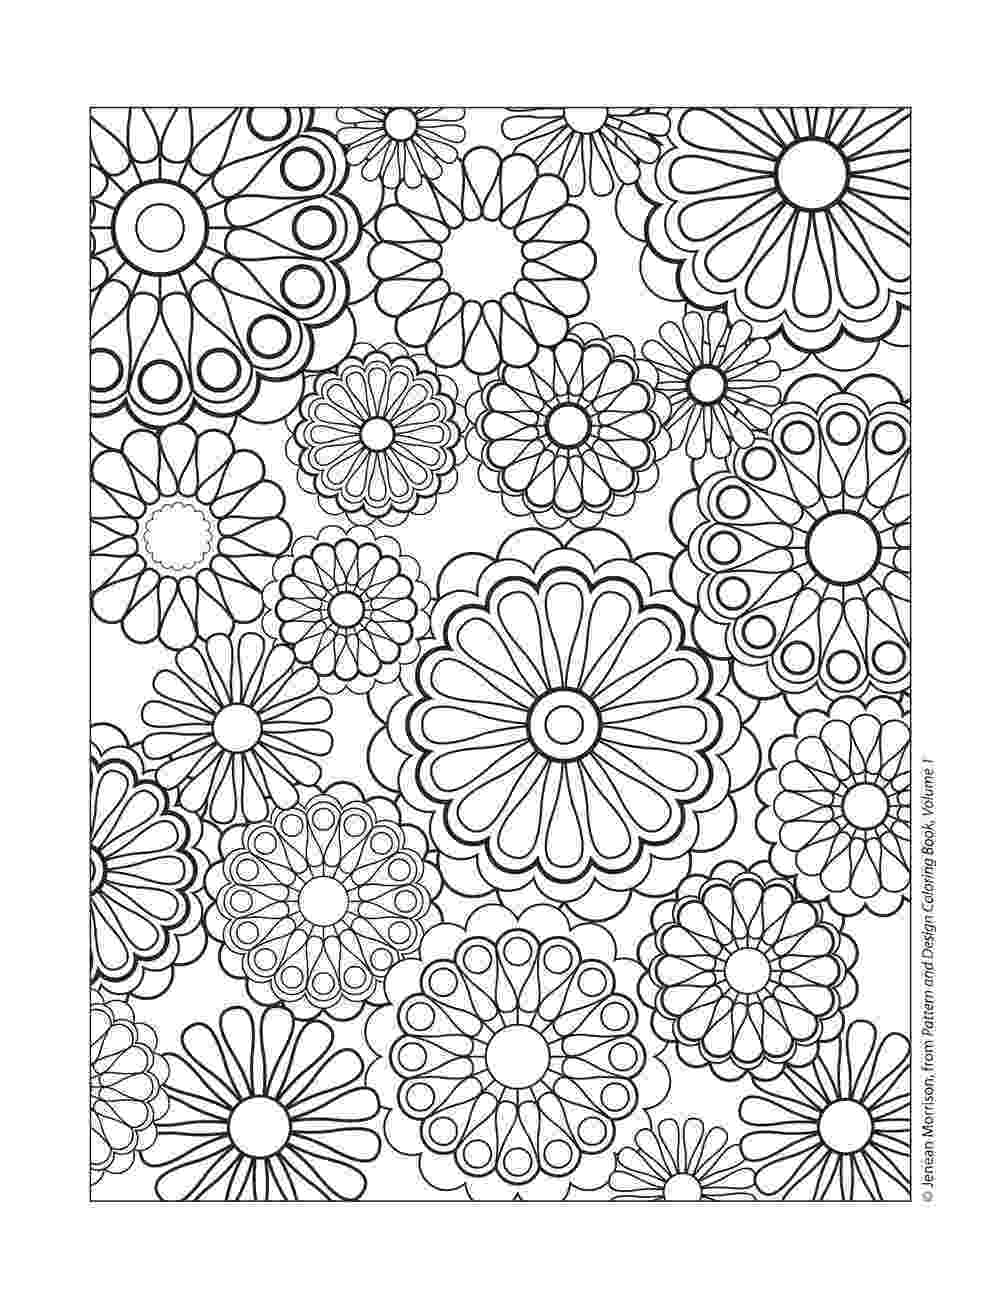 printable colouring patterns don39t eat the paste rainbow coloring page patterns colouring printable